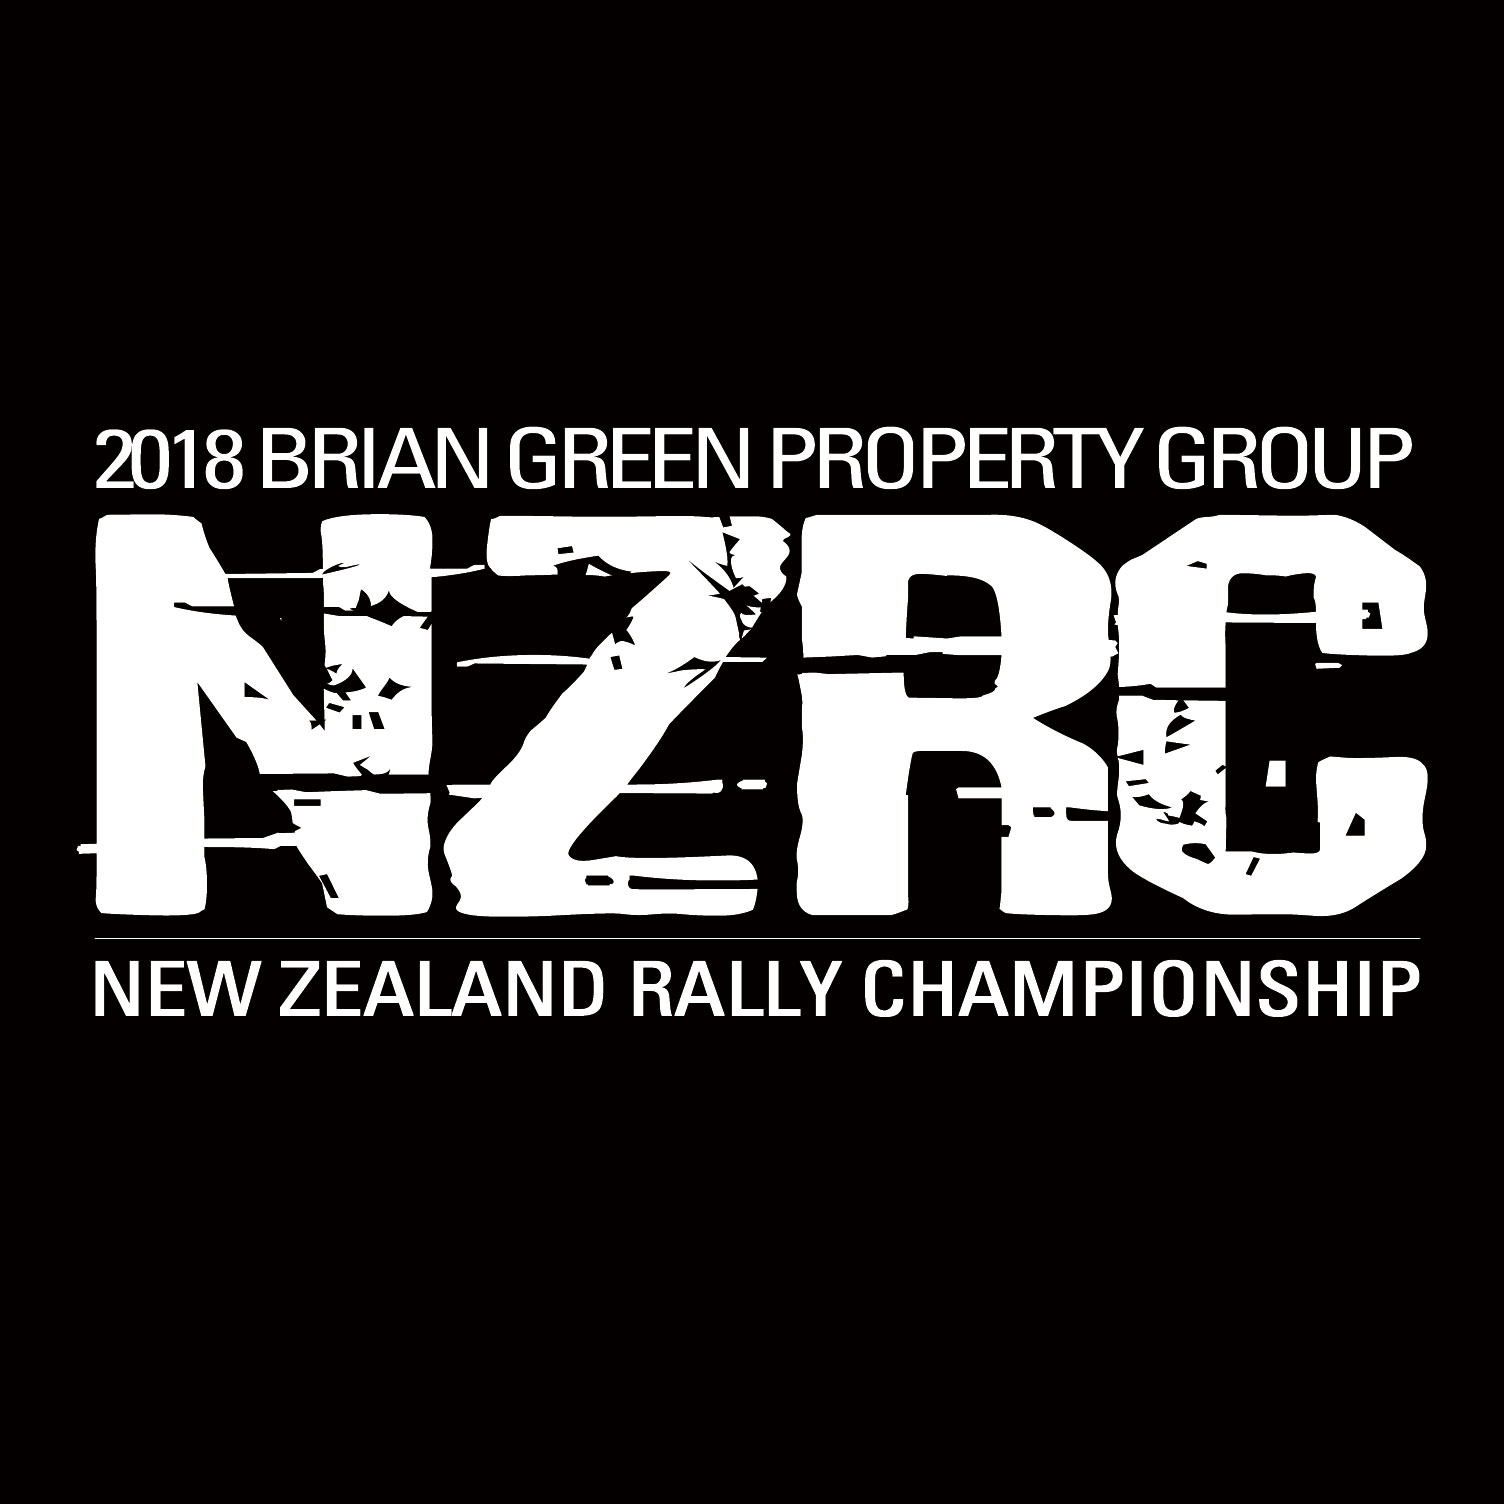 Dunlop drives New Zealand Rallying | :: Brian Green Property Group New Zealand Rally Championship ::